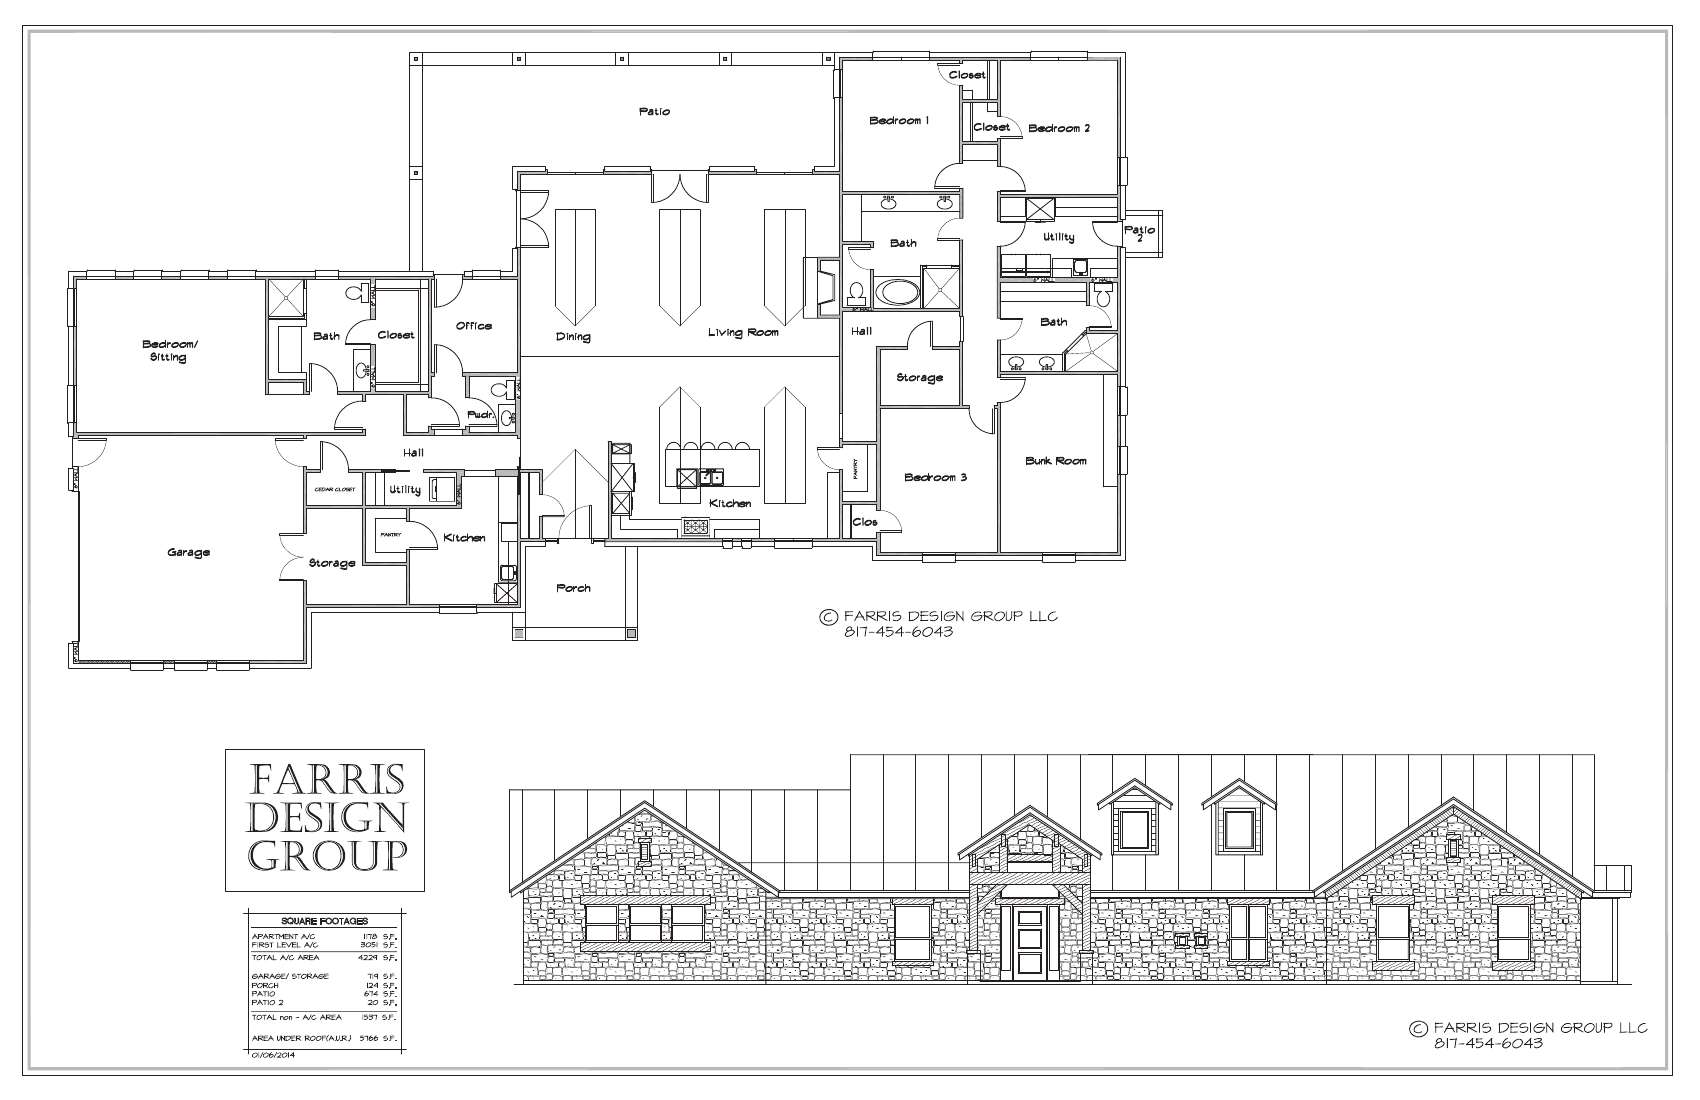 Home farris design group llc custom home plans for Design homes llc